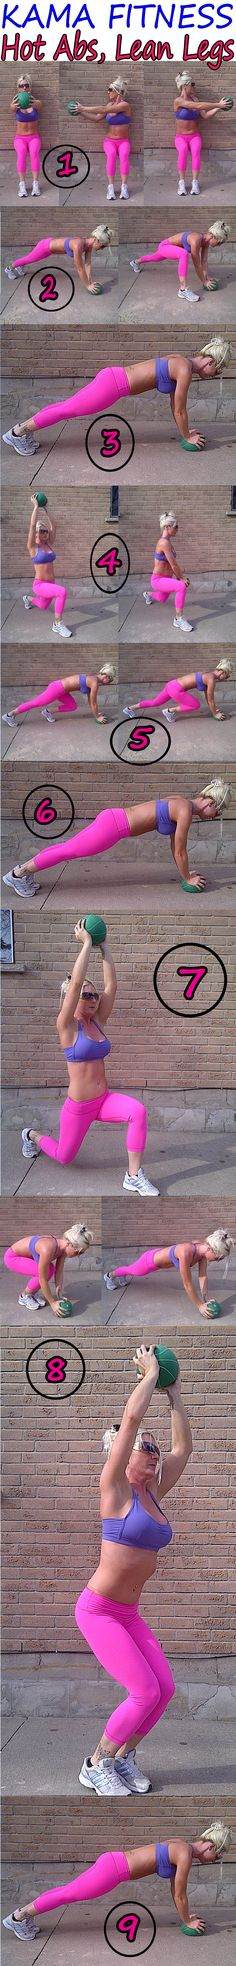 Hot Abs & Lean Legs Medicine Ball Workout | KAMA FITNESS... can't stop pinning her stuff.. I need to get a medicine ball